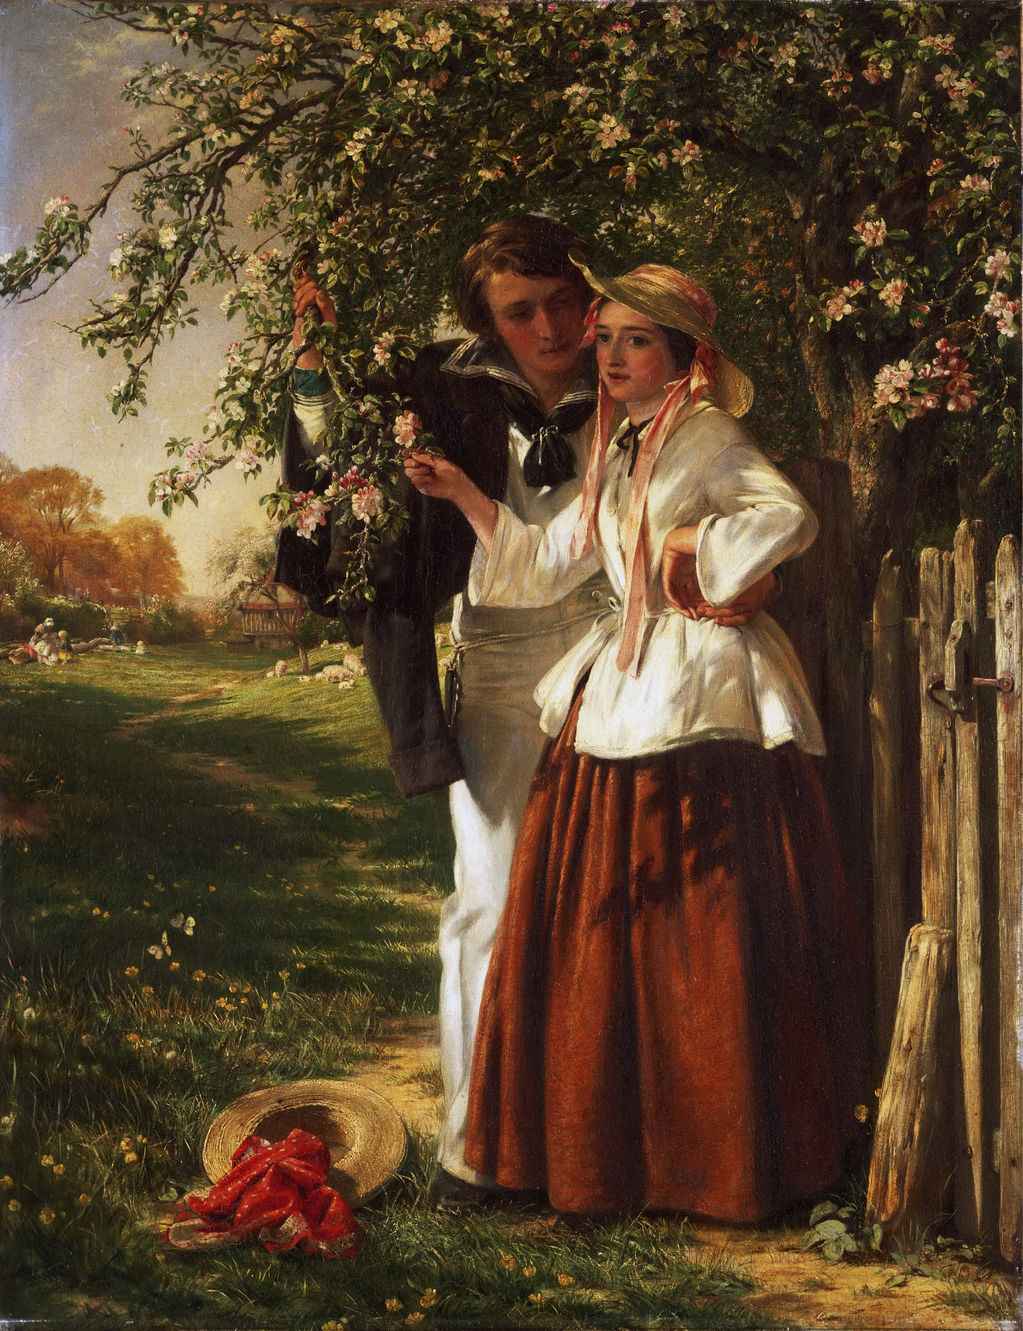 Lovers under a Blossom Tree by John Callcott Horsley (English, 1817 - 1903).